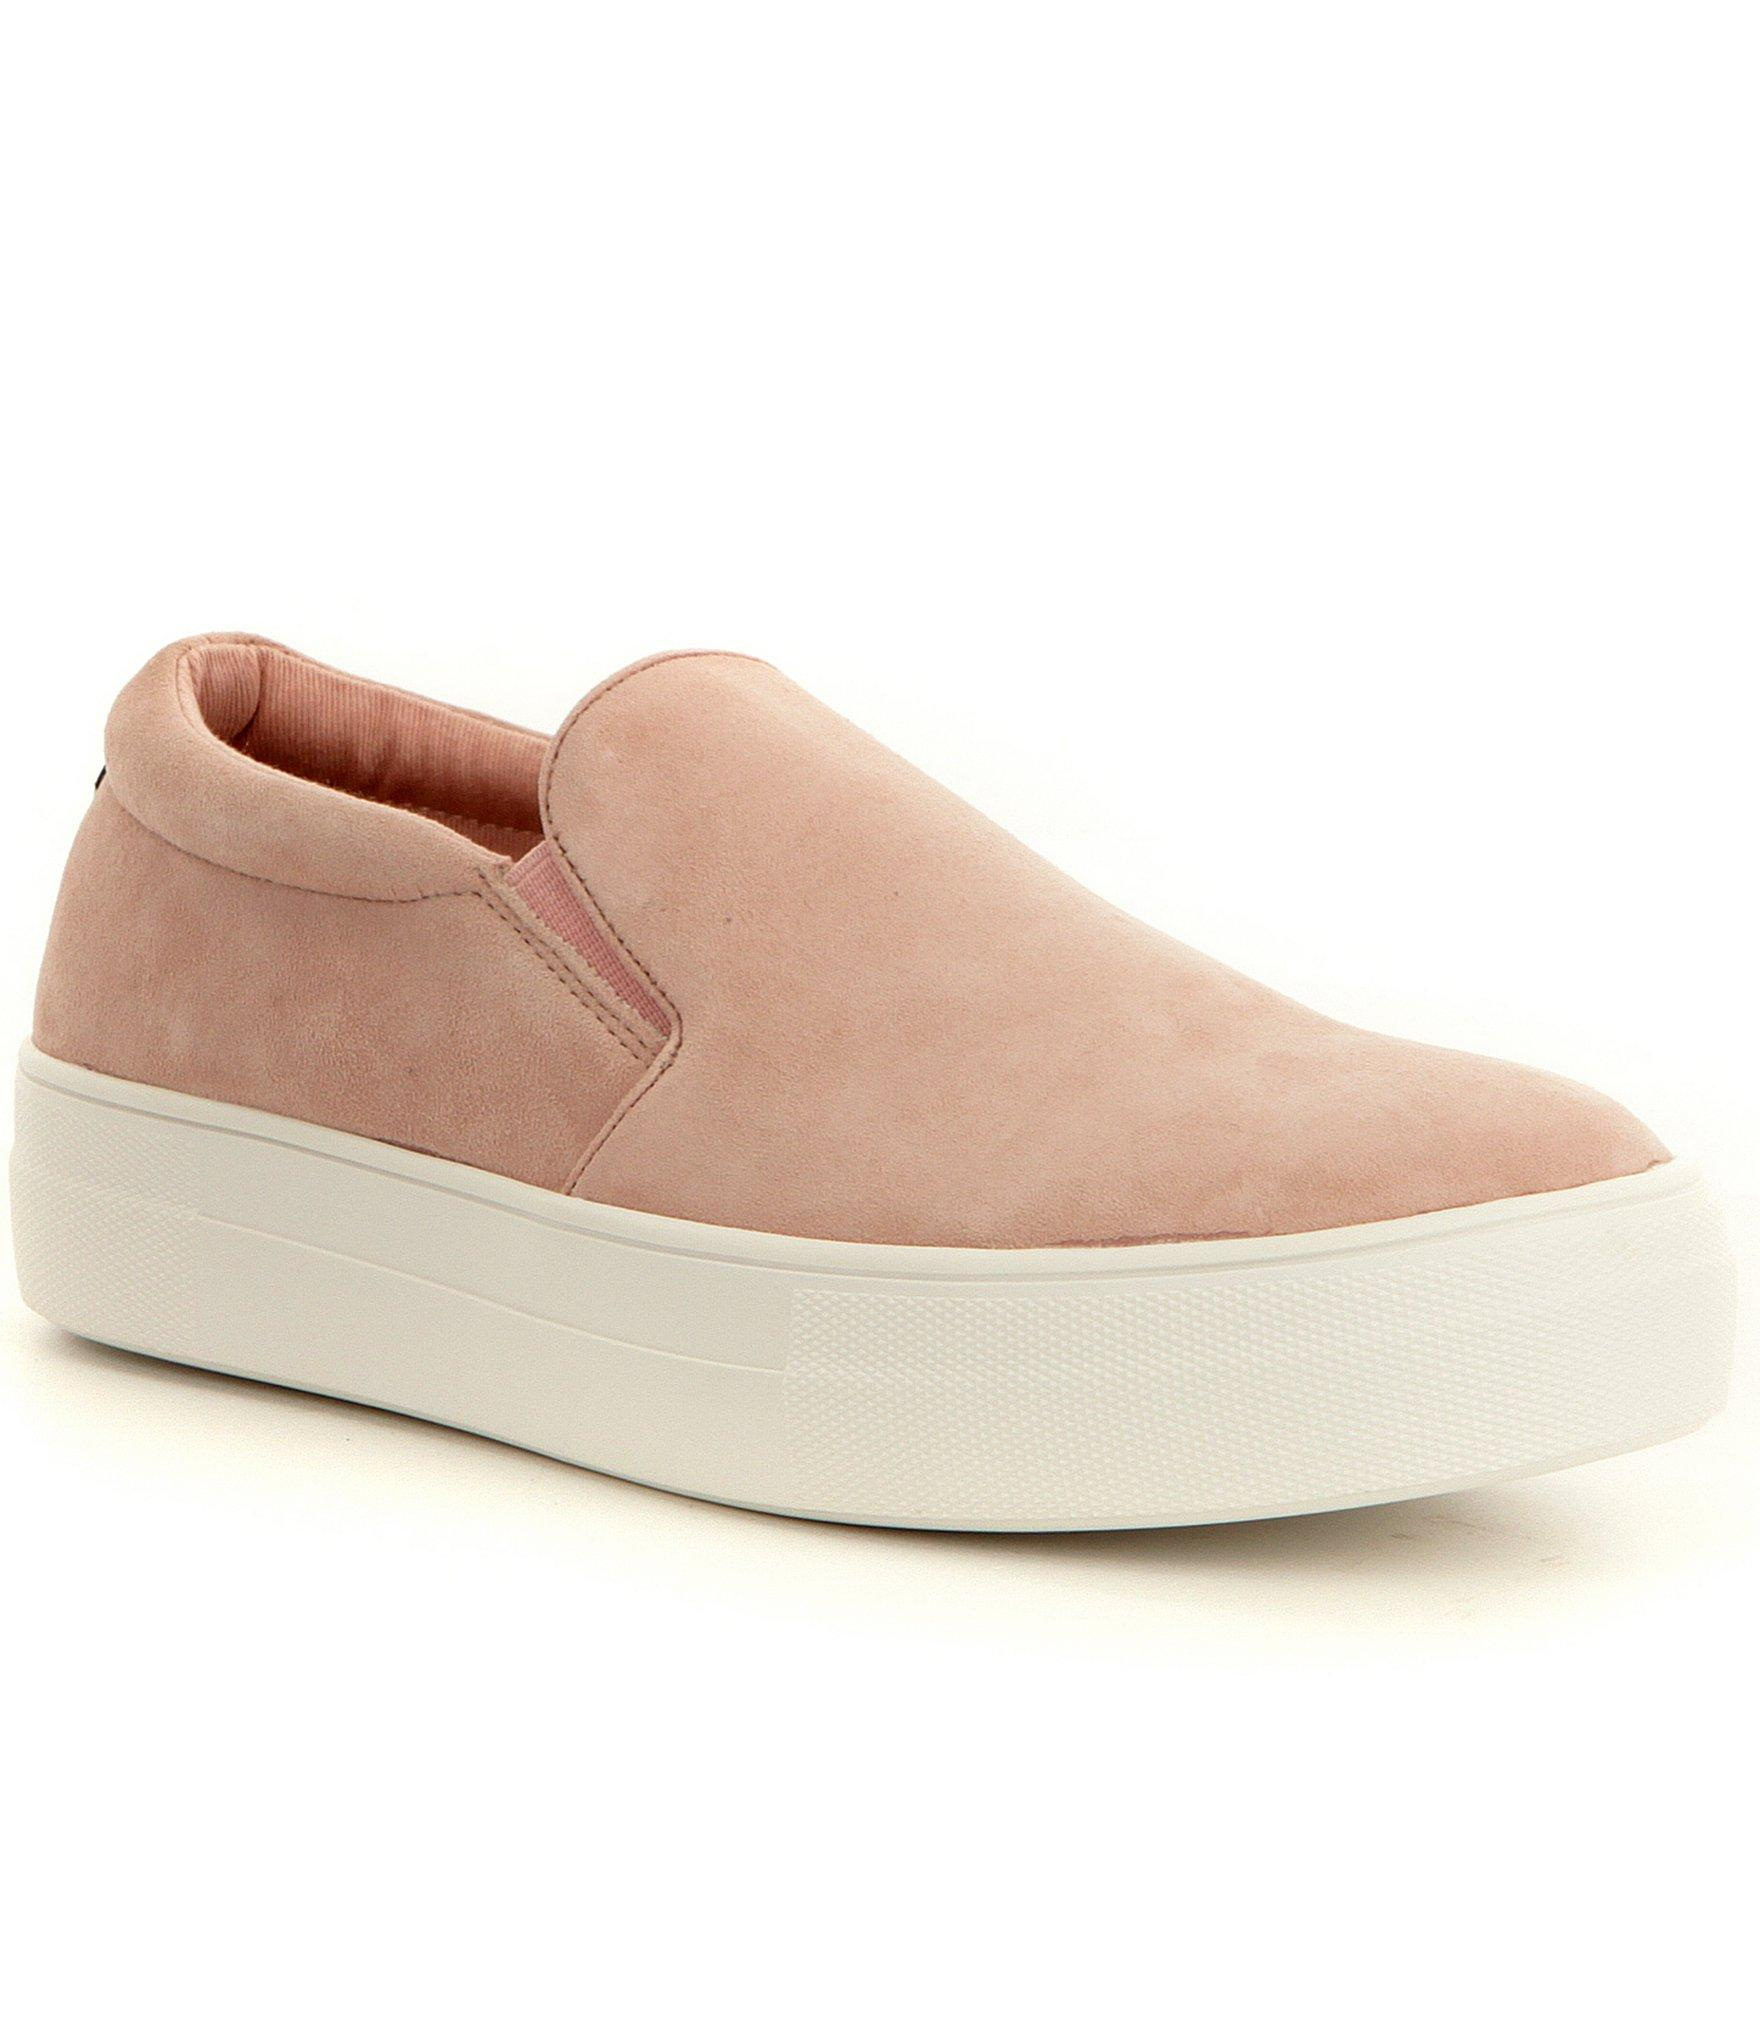 ade7a3226a78 Lyst - Steve Madden Gills Suede Slip On Platform Sneakers in Pink ...